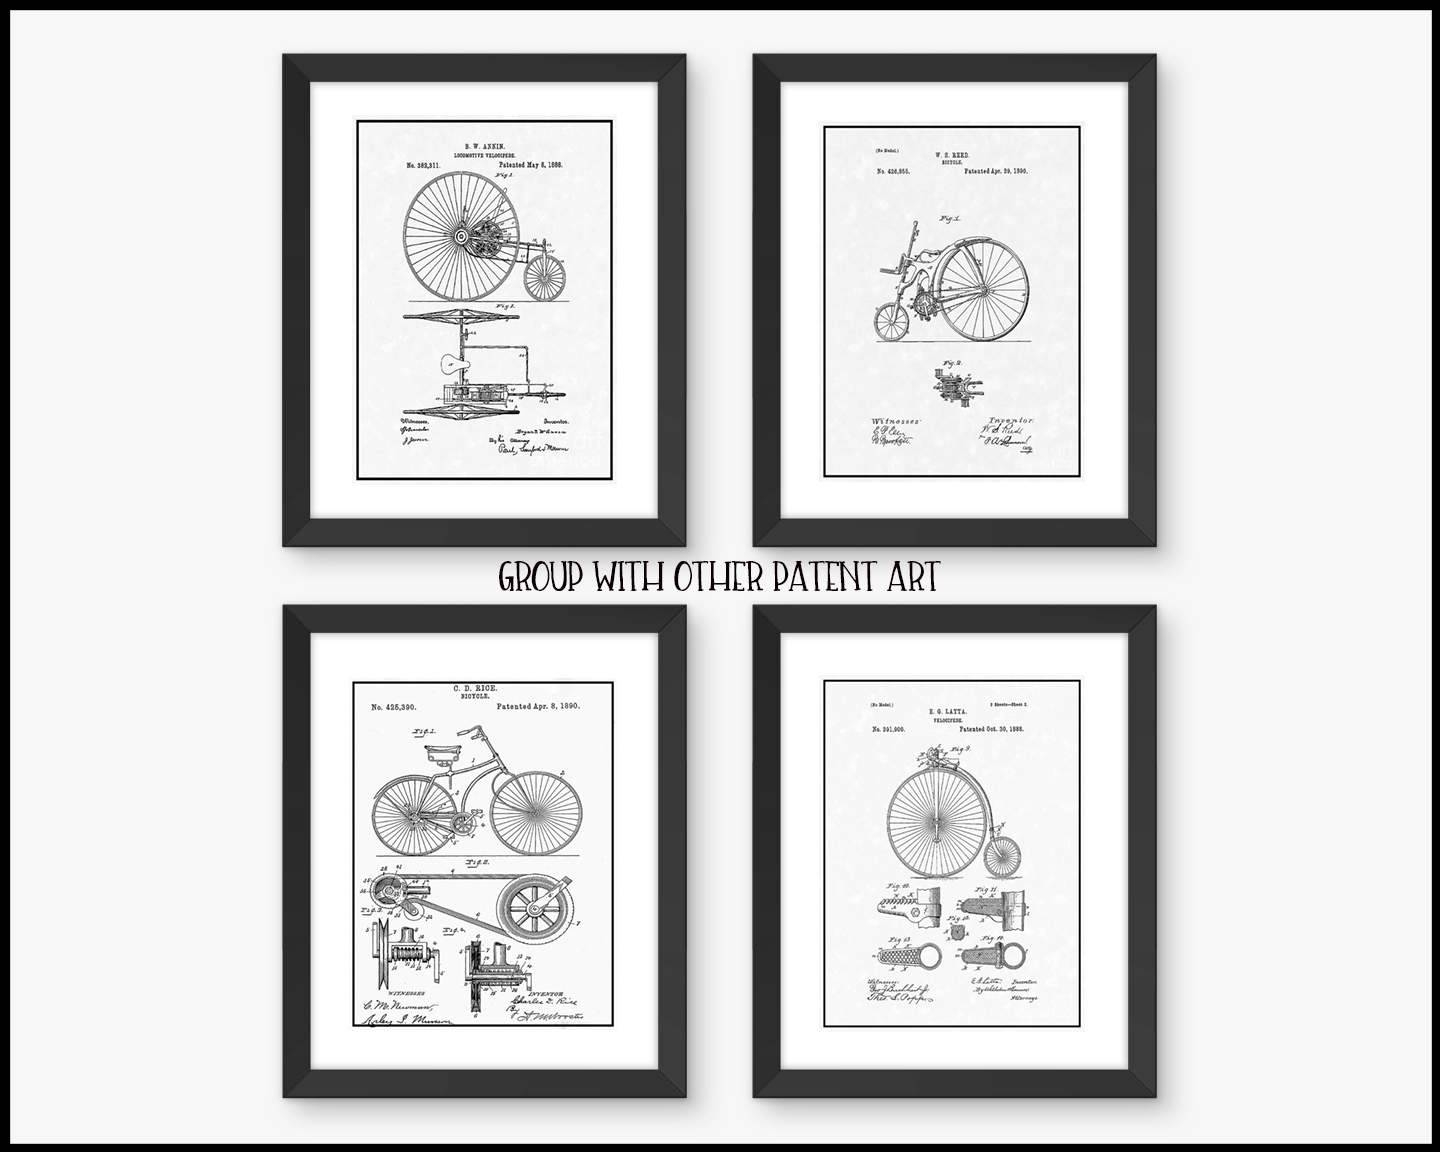 Framed Wall Art – Vintage Bicycle Patent  Free Shipping – Wall Art With Regard To 2017 Black And White Wall Art Sets (View 15 of 20)